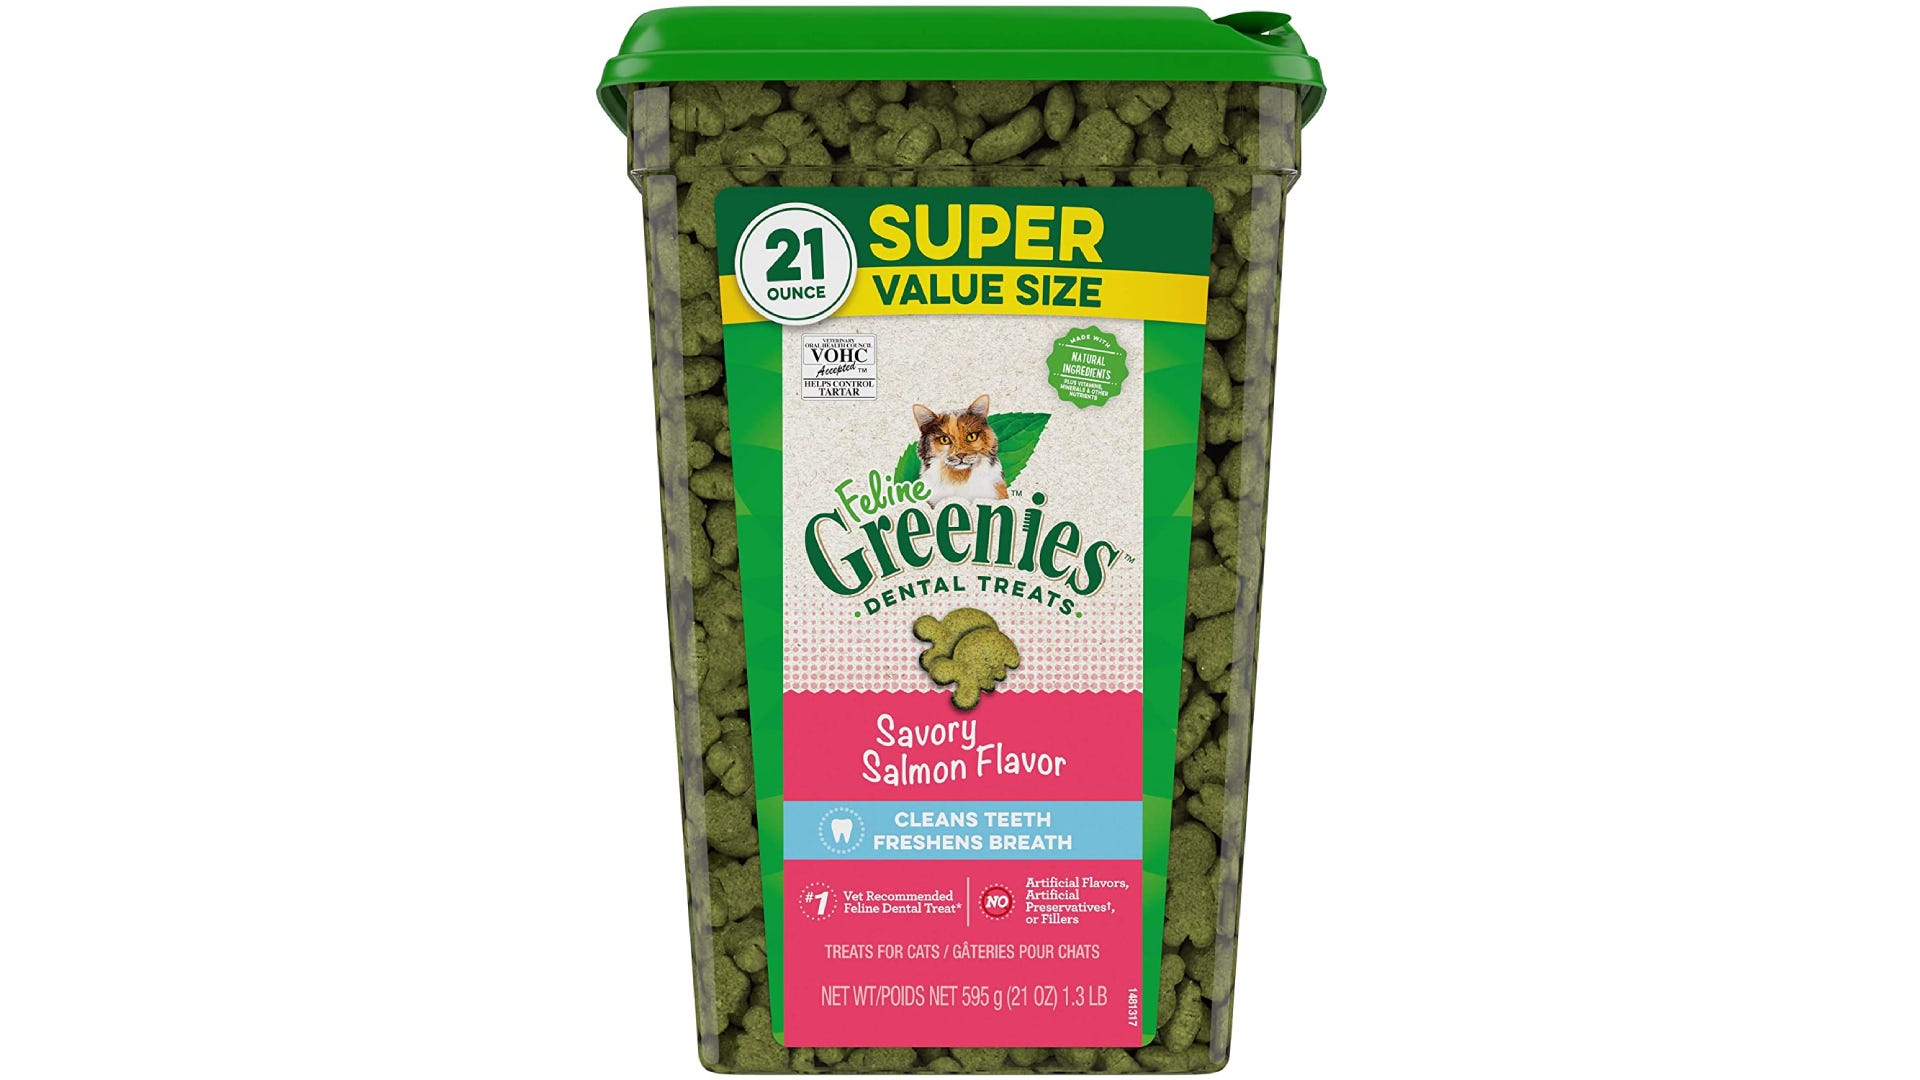 a large super value size container of feline greenies treats in savory salmon flavor